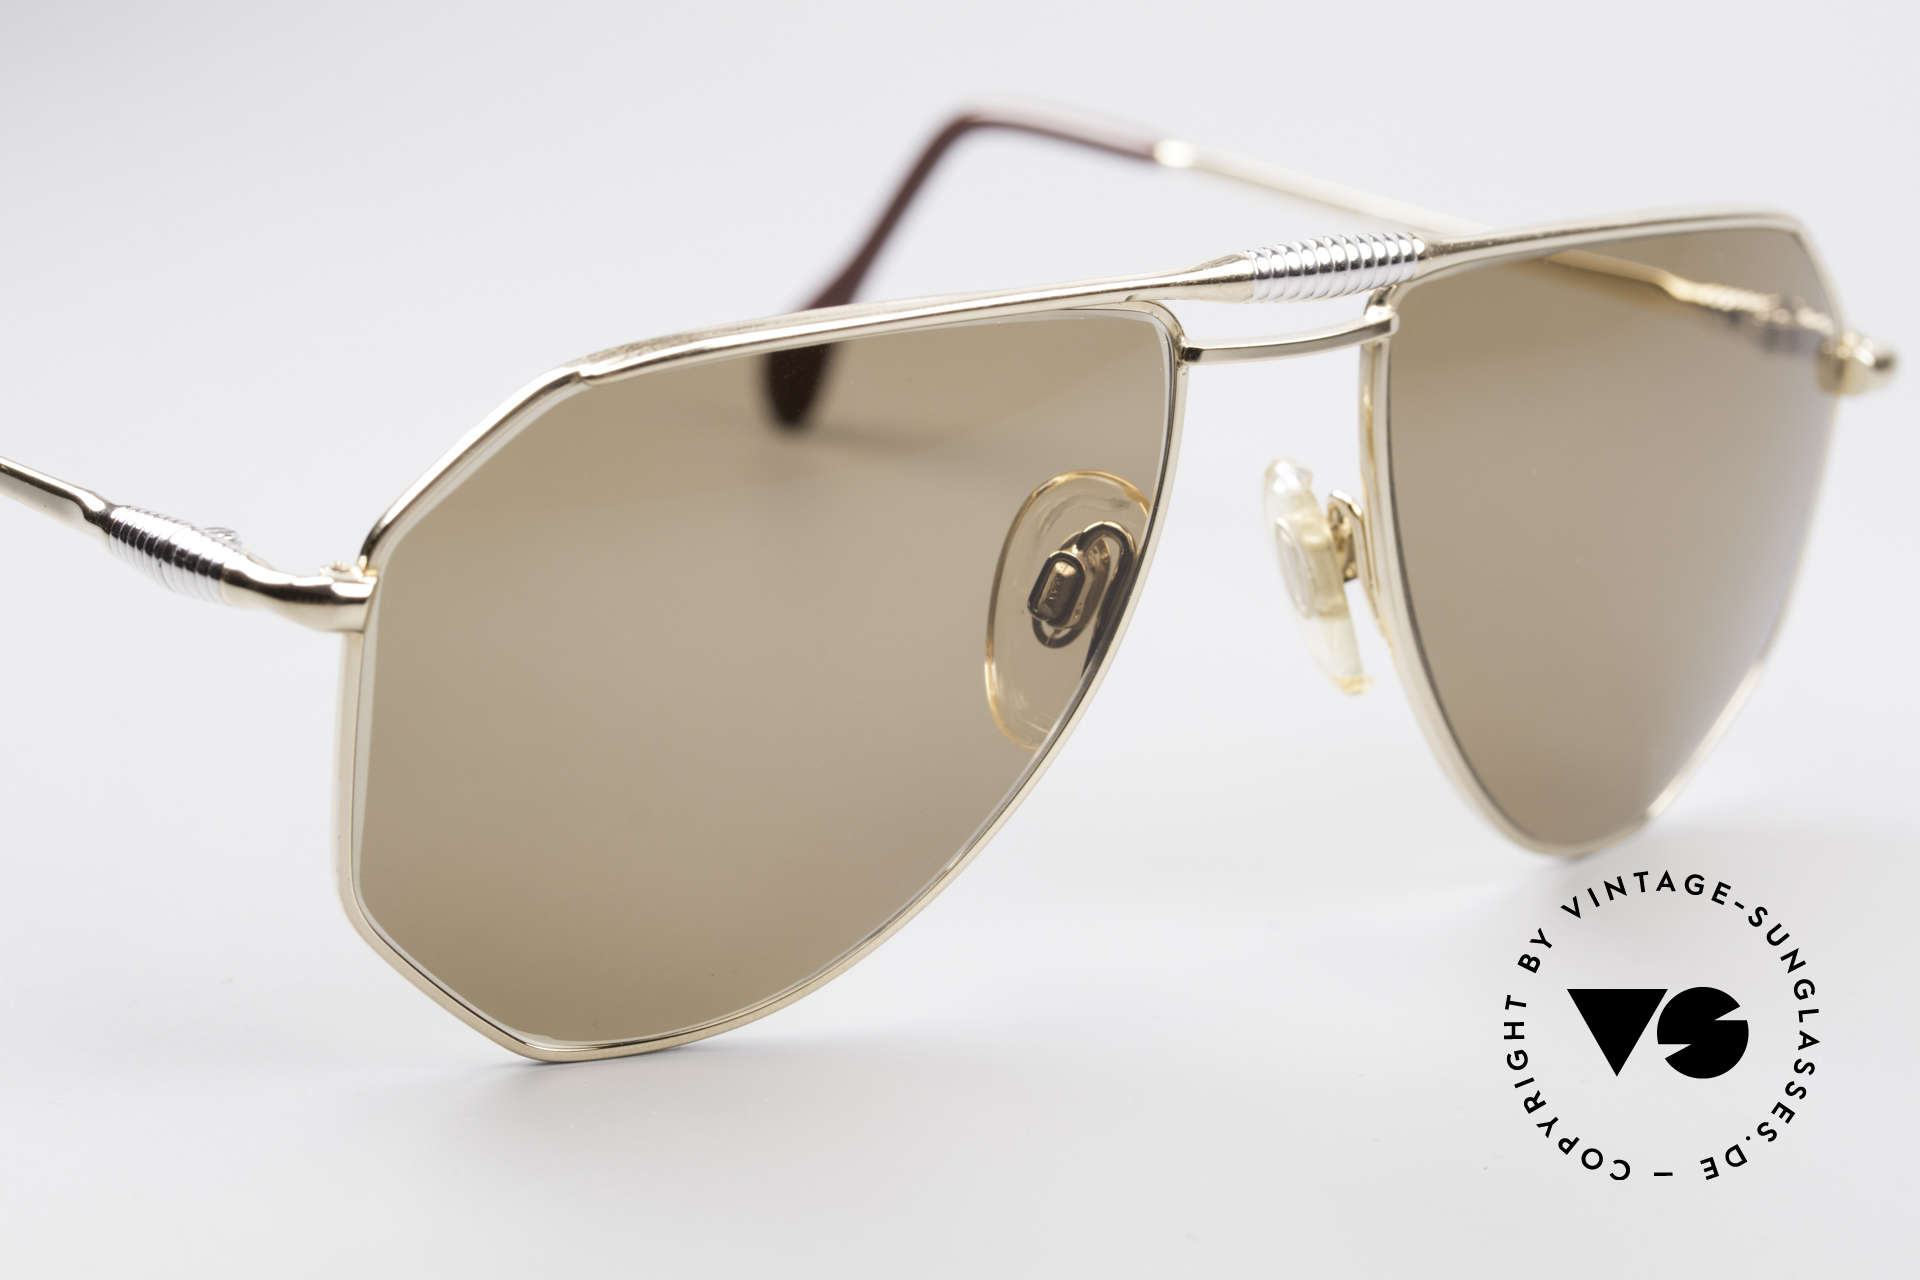 Zollitsch Cadre 120 Medium 80's Men's Sunglasses, NO retro shades, but a 30 years old original, M size 56/18, Made for Men